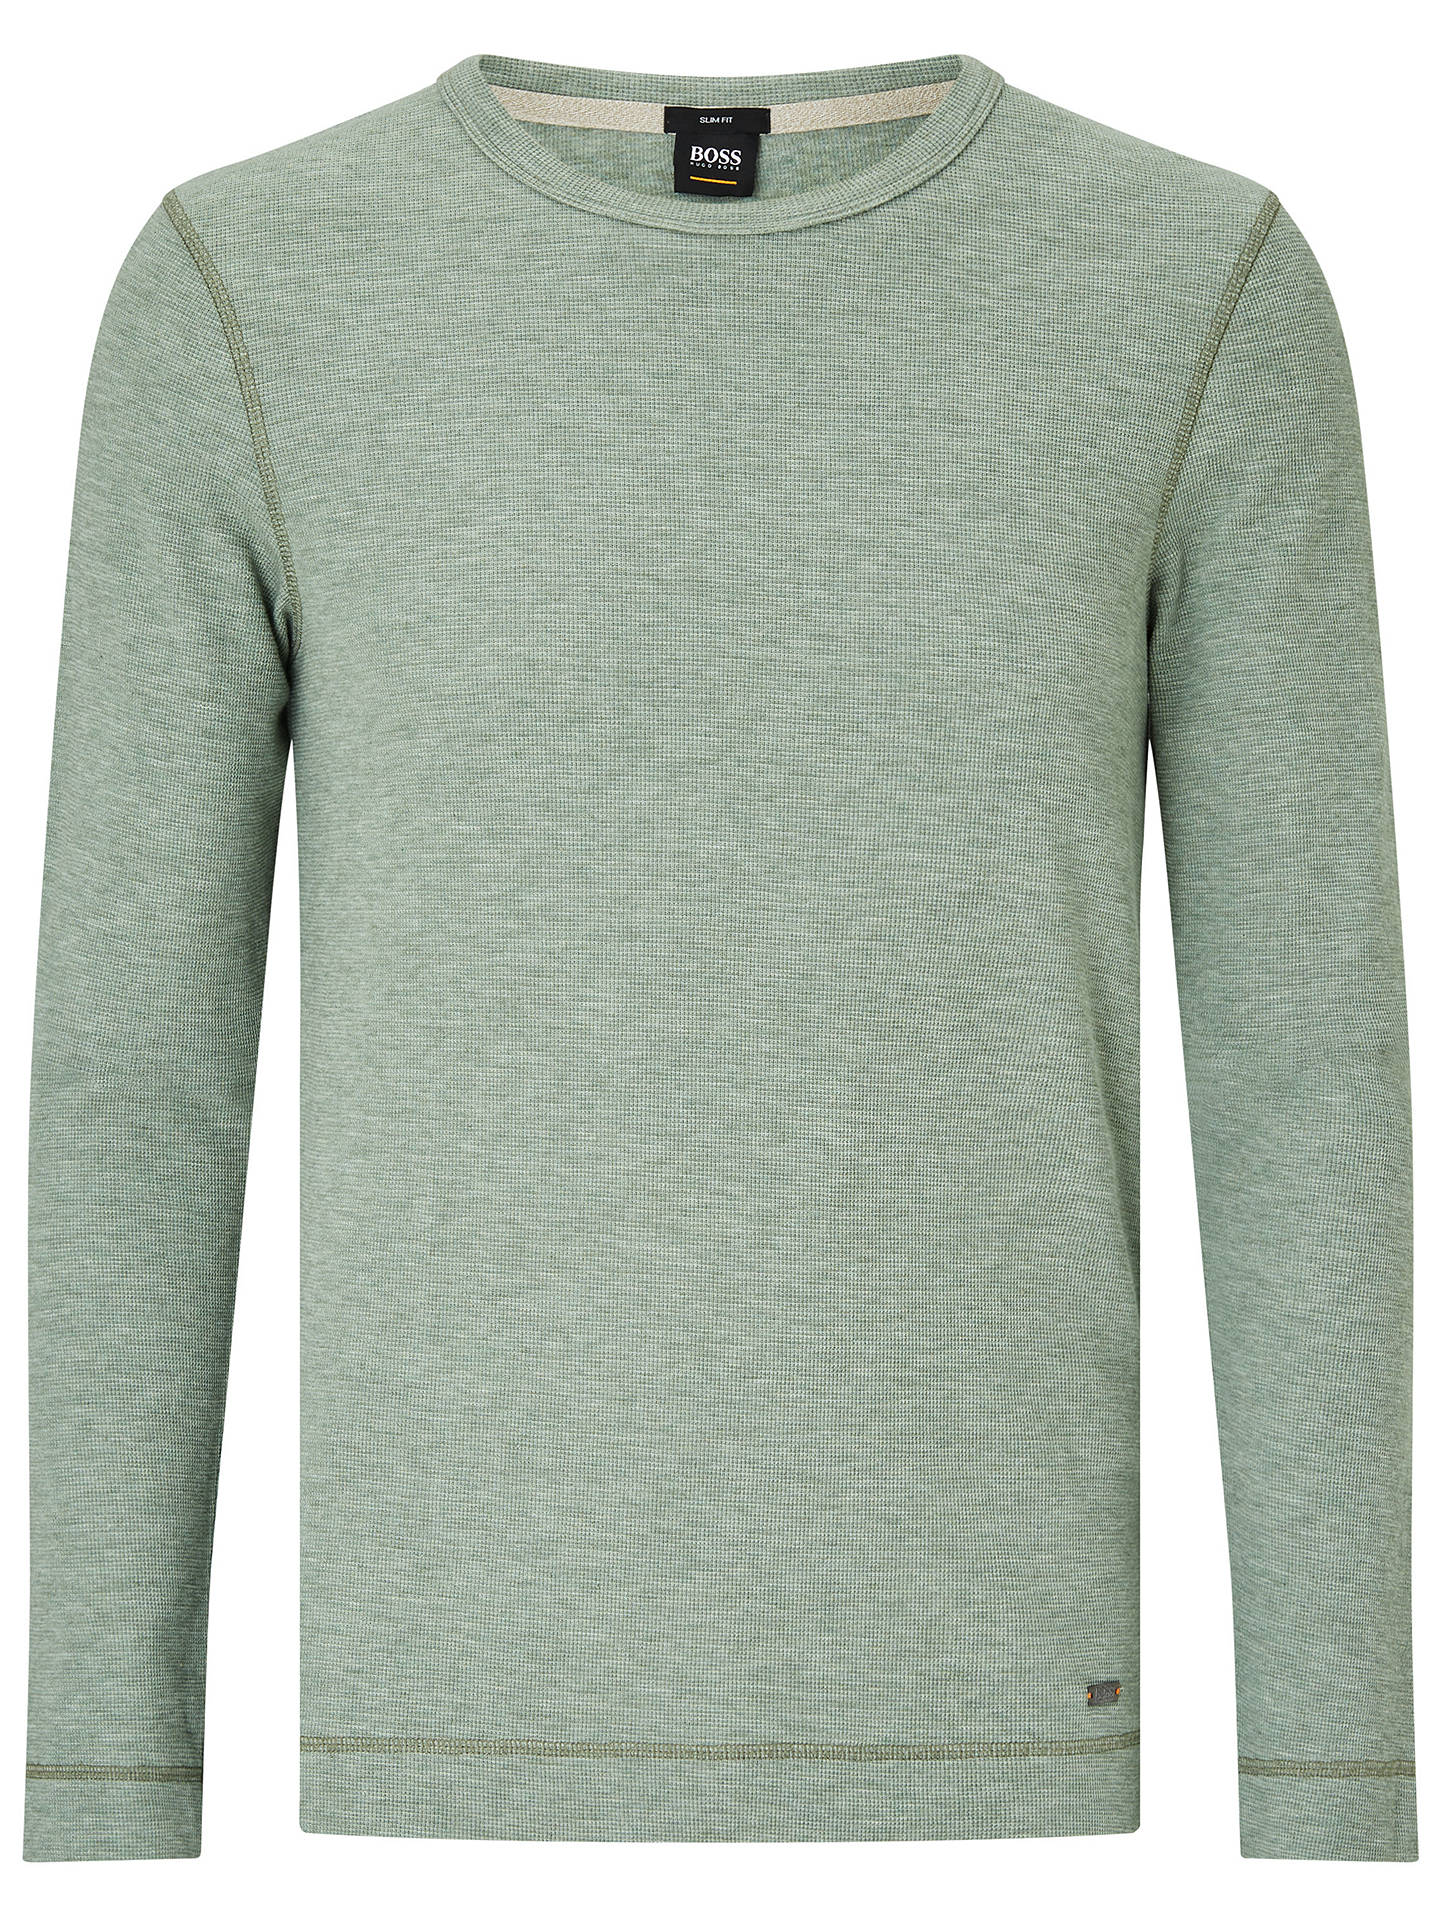 Boss Tempest Long Sleeve Slim Fit T Shirt At John Lewis Partners Tendencies Tshirt Monday To Navy Xxl Buyboss Light Green S Online